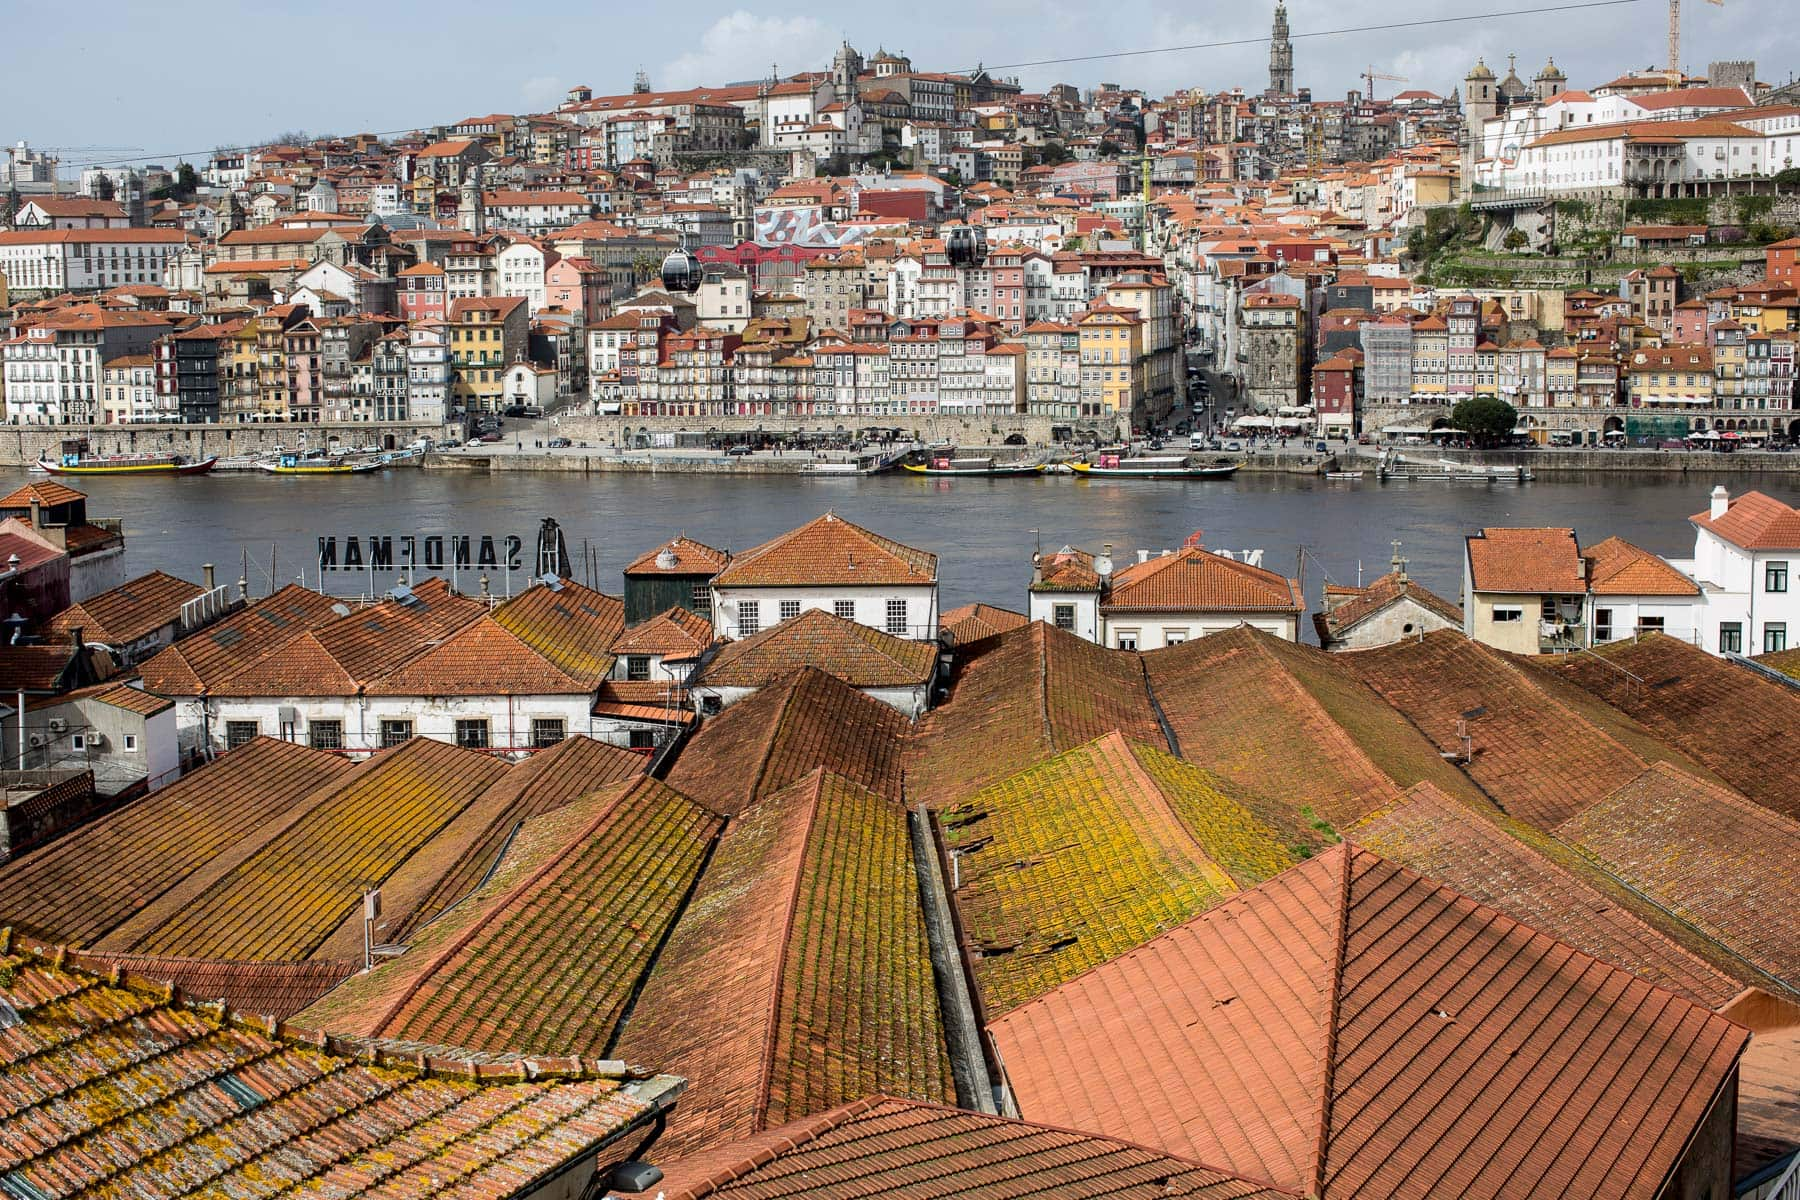 View over the rooftops in Porto, Portugal.